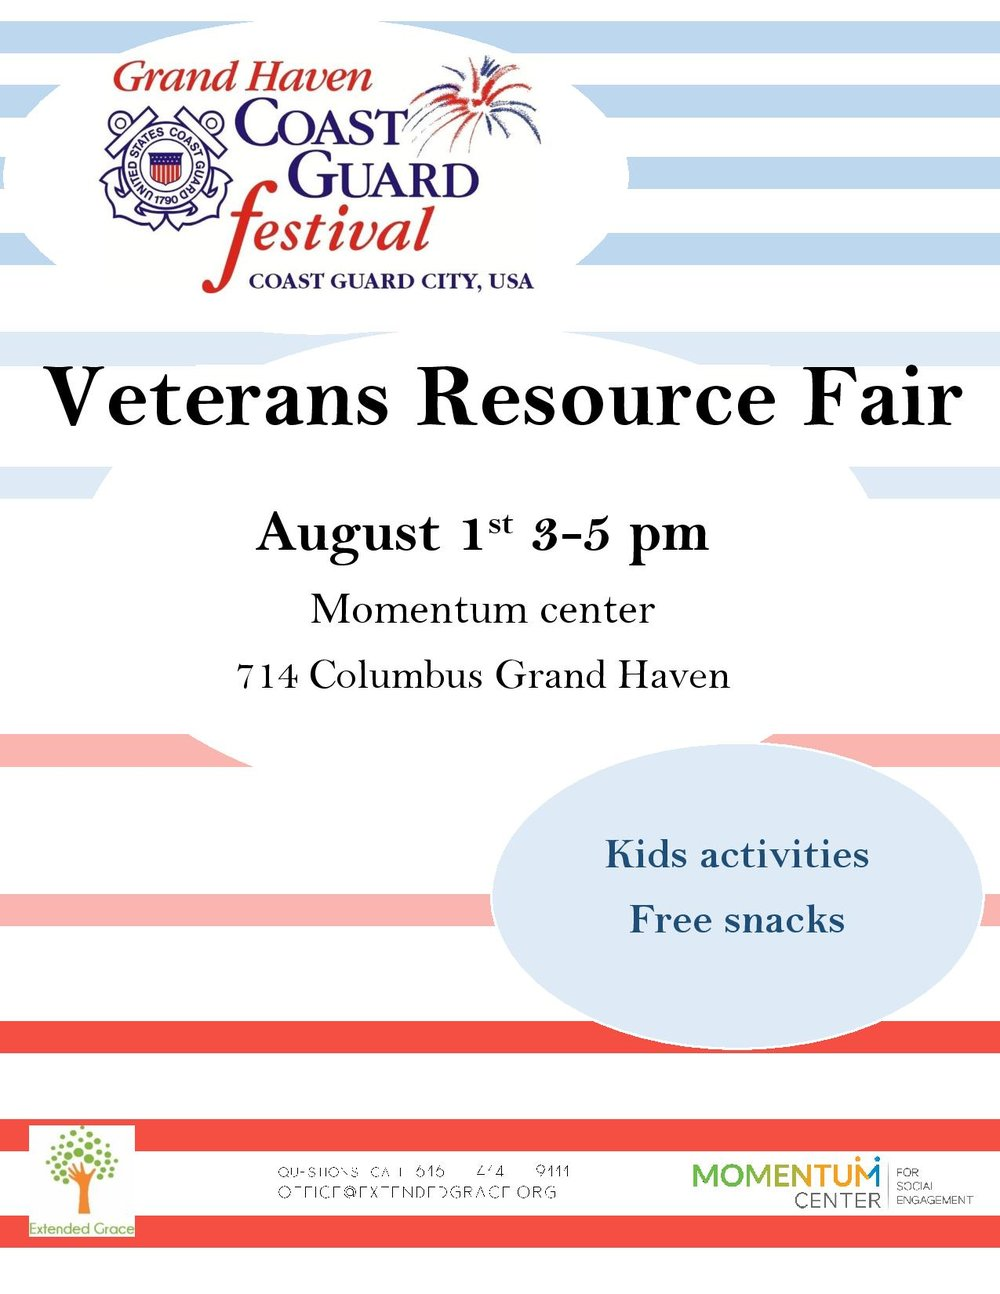 veterans resource fair flyer-page-001.jpg